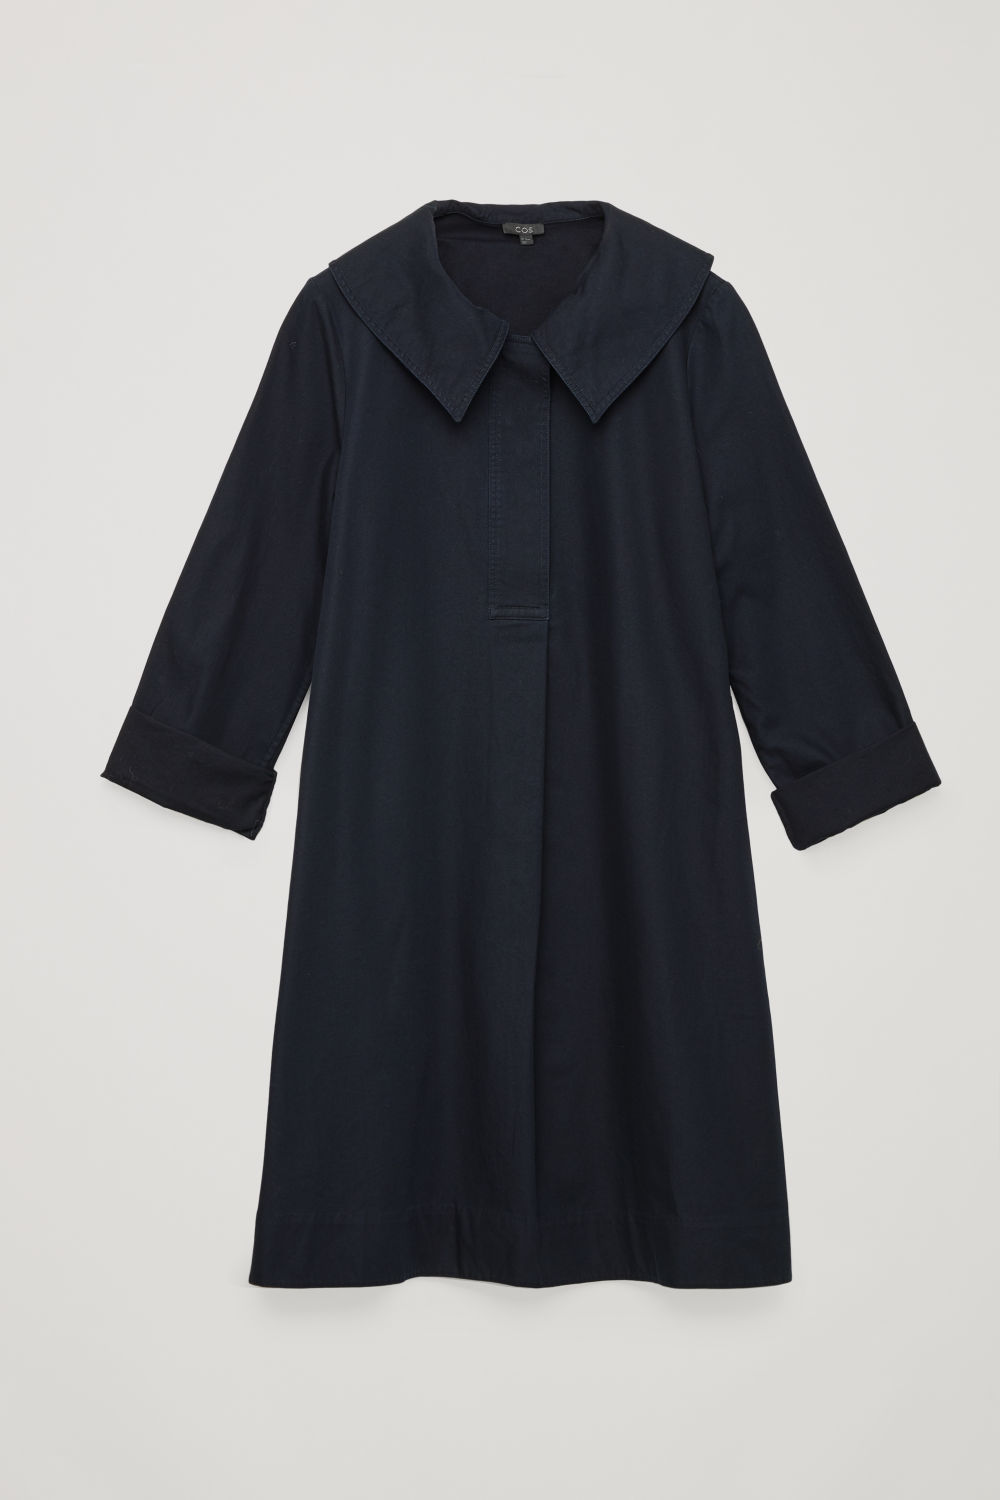 OVERSIZED-COLLAR COTTON DRESS